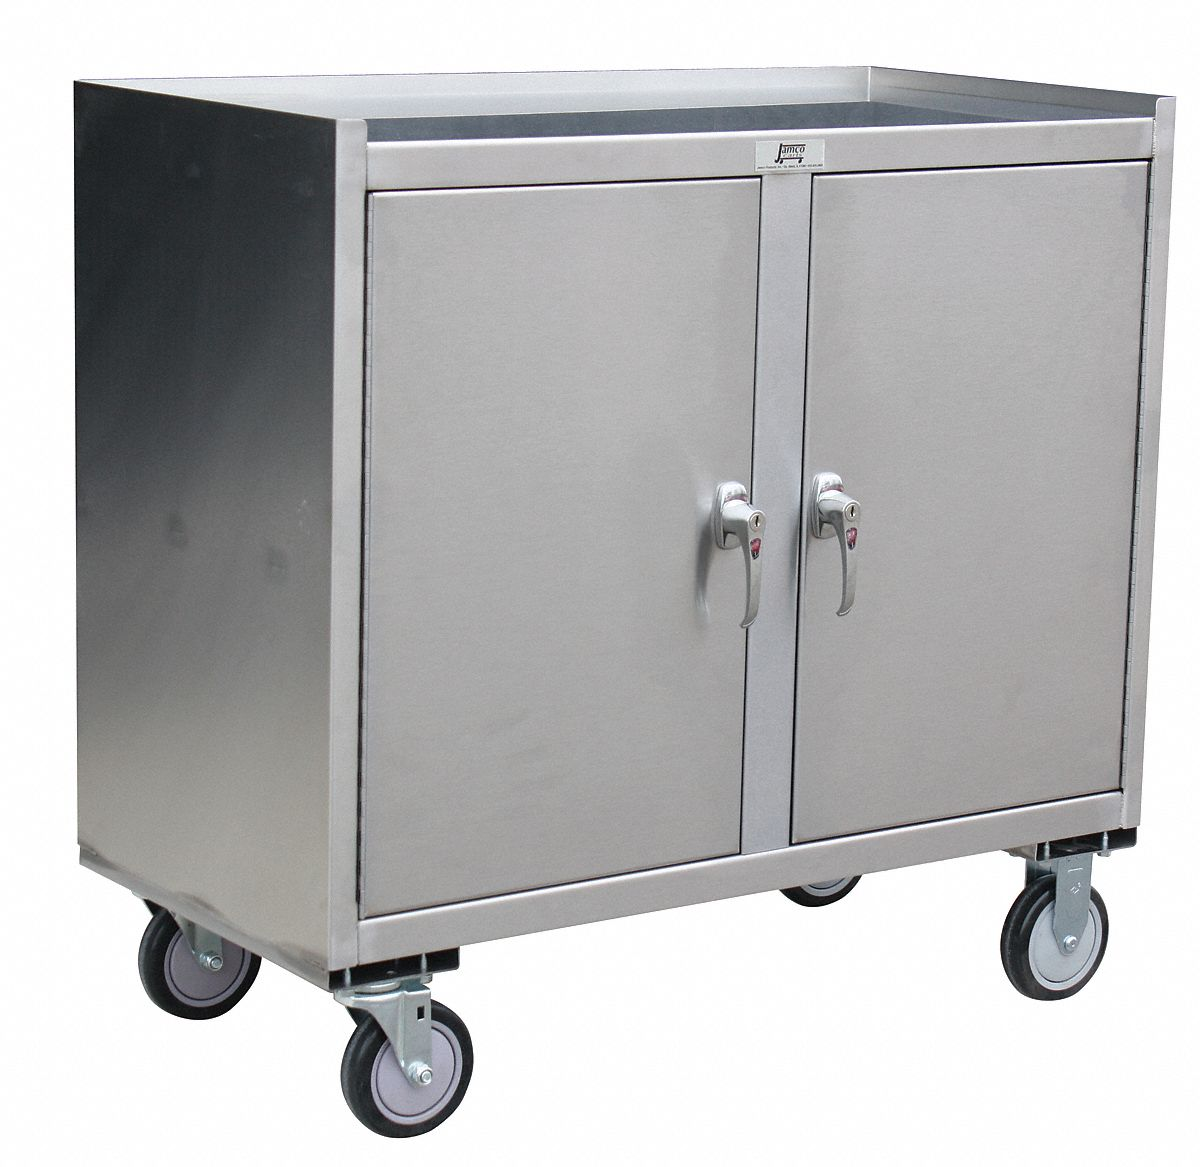 Jamco Mobile Cabinet Workbench Stainless Steel 21 Quot Depth